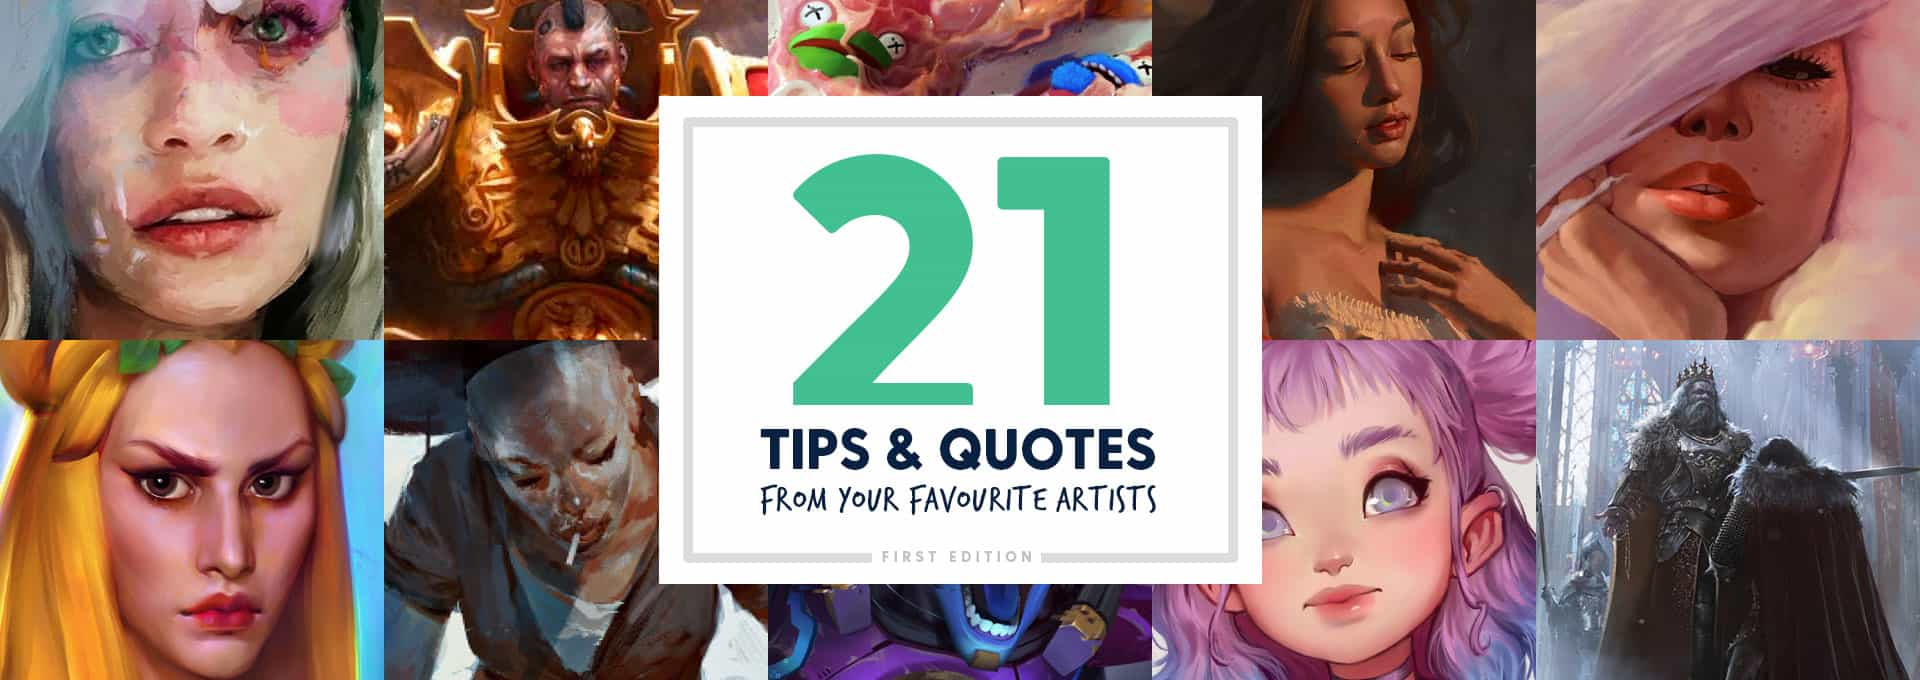 Artist Quotes & Tips Digital Painting Paintable